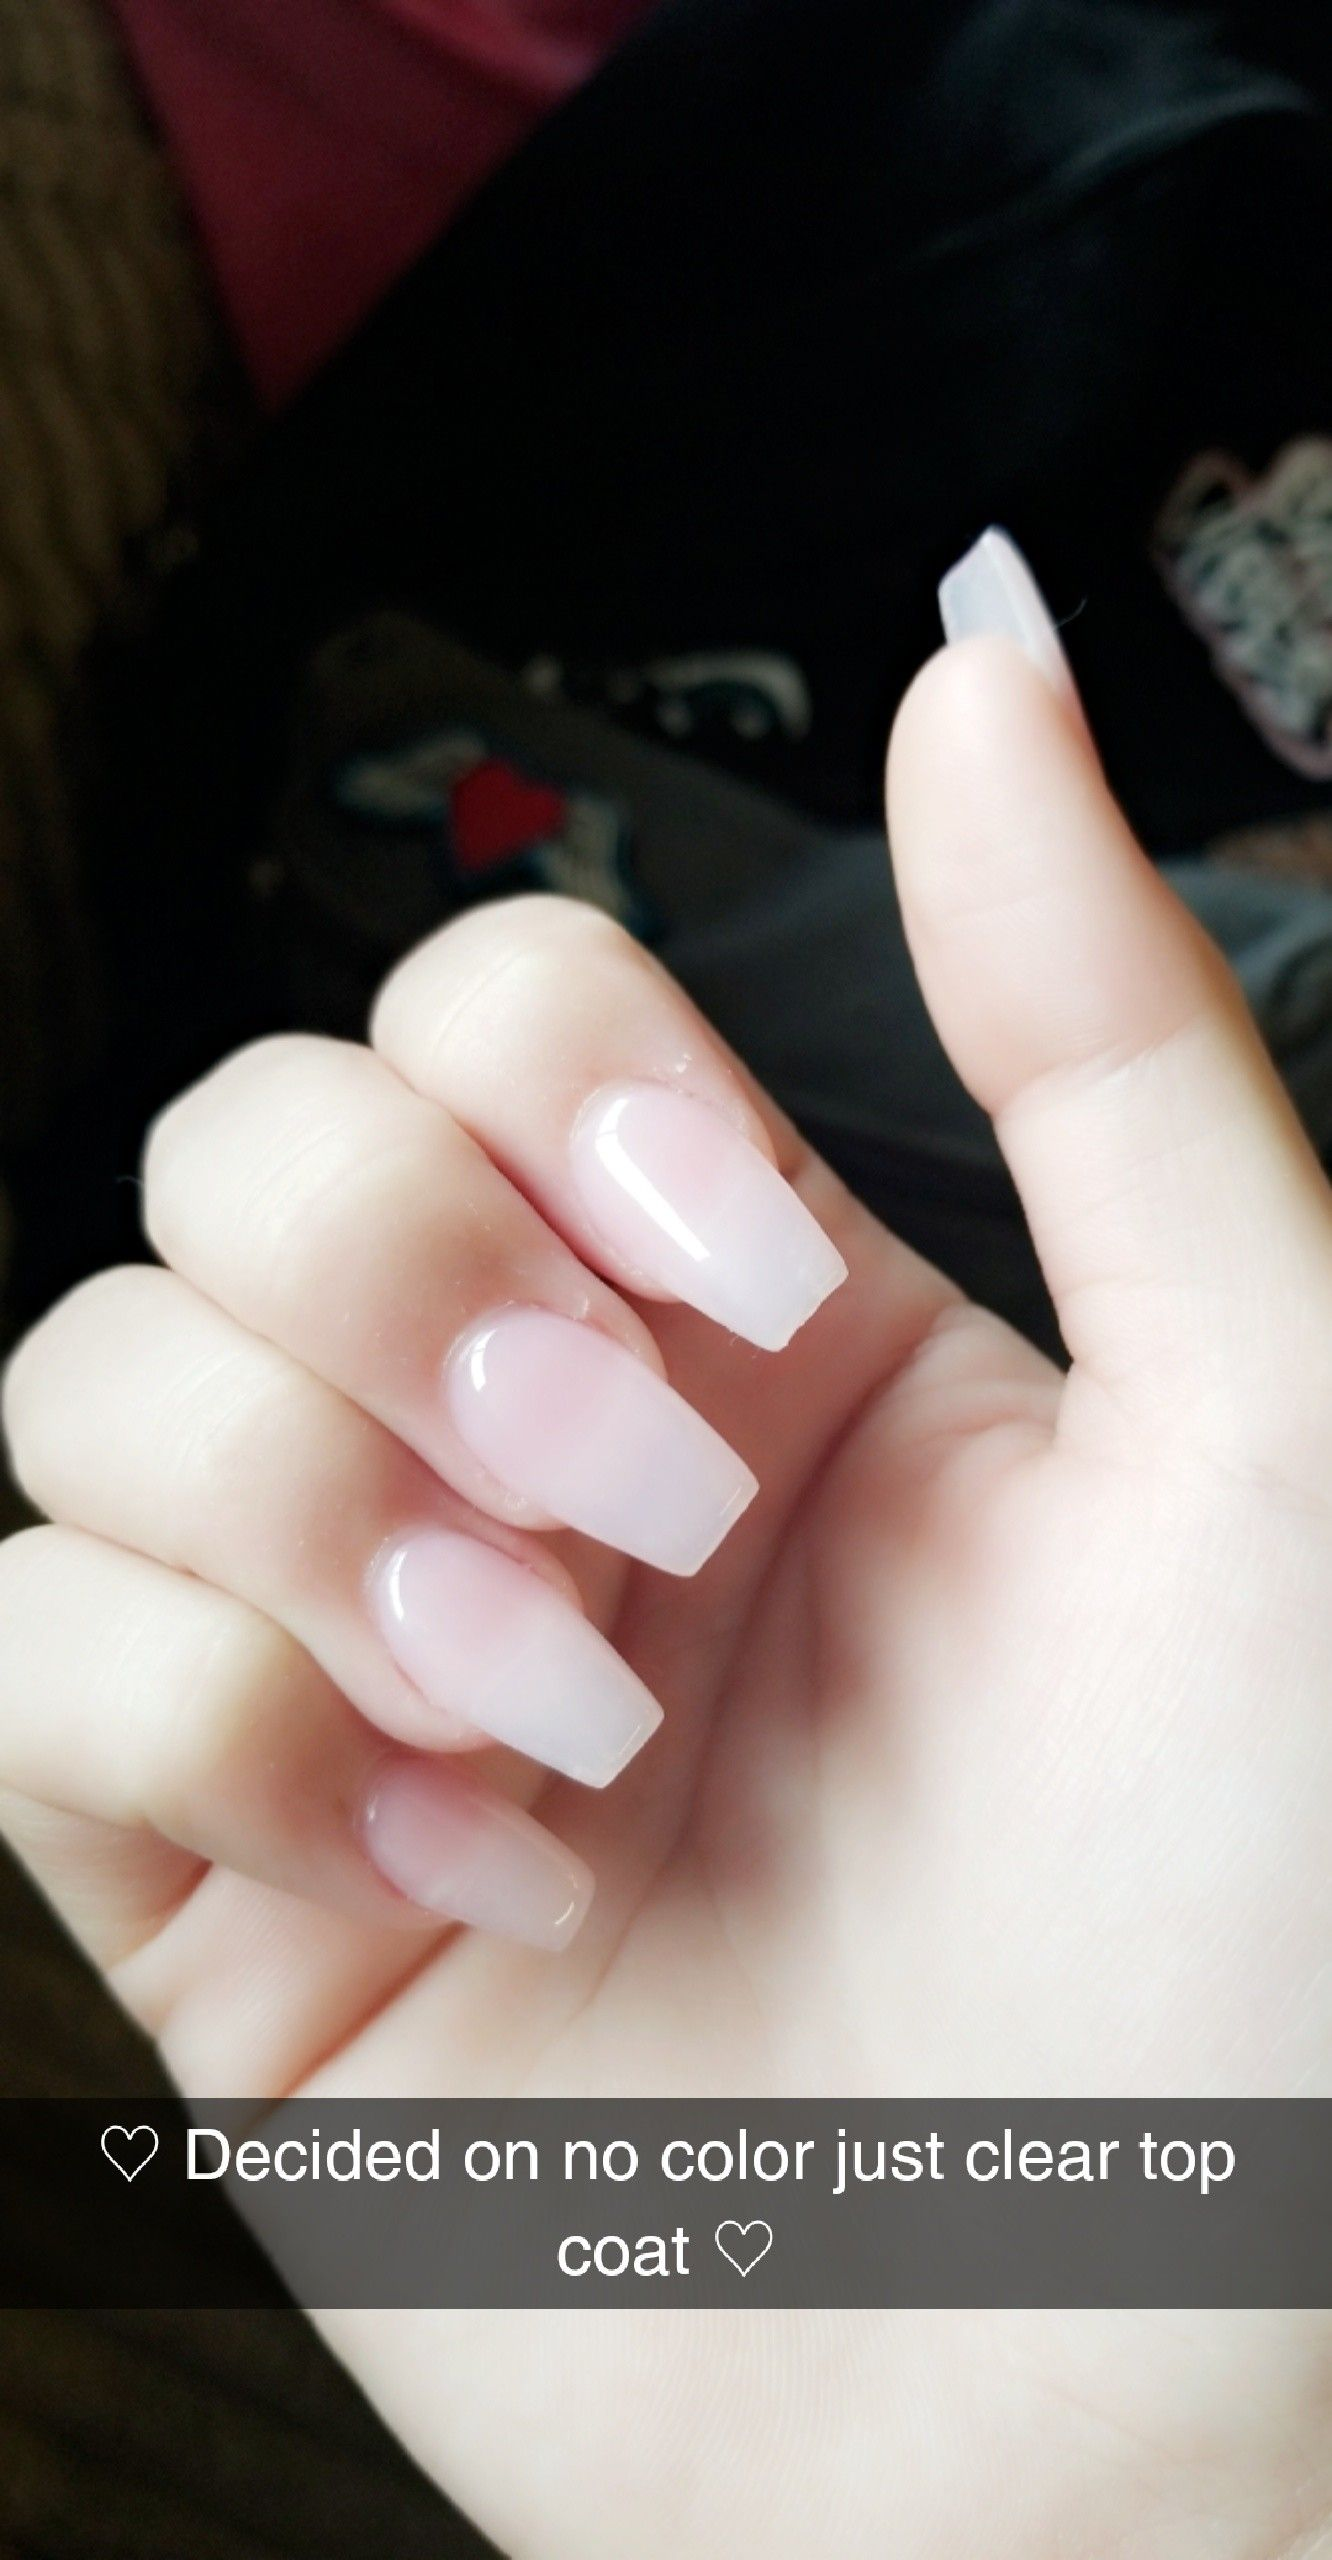 Pin Dominiquemae390 Ig Only1 Queenk Spaammm Ig Prettygurl Spaaam Fake Nails Pretty Acrylic Nails Nails